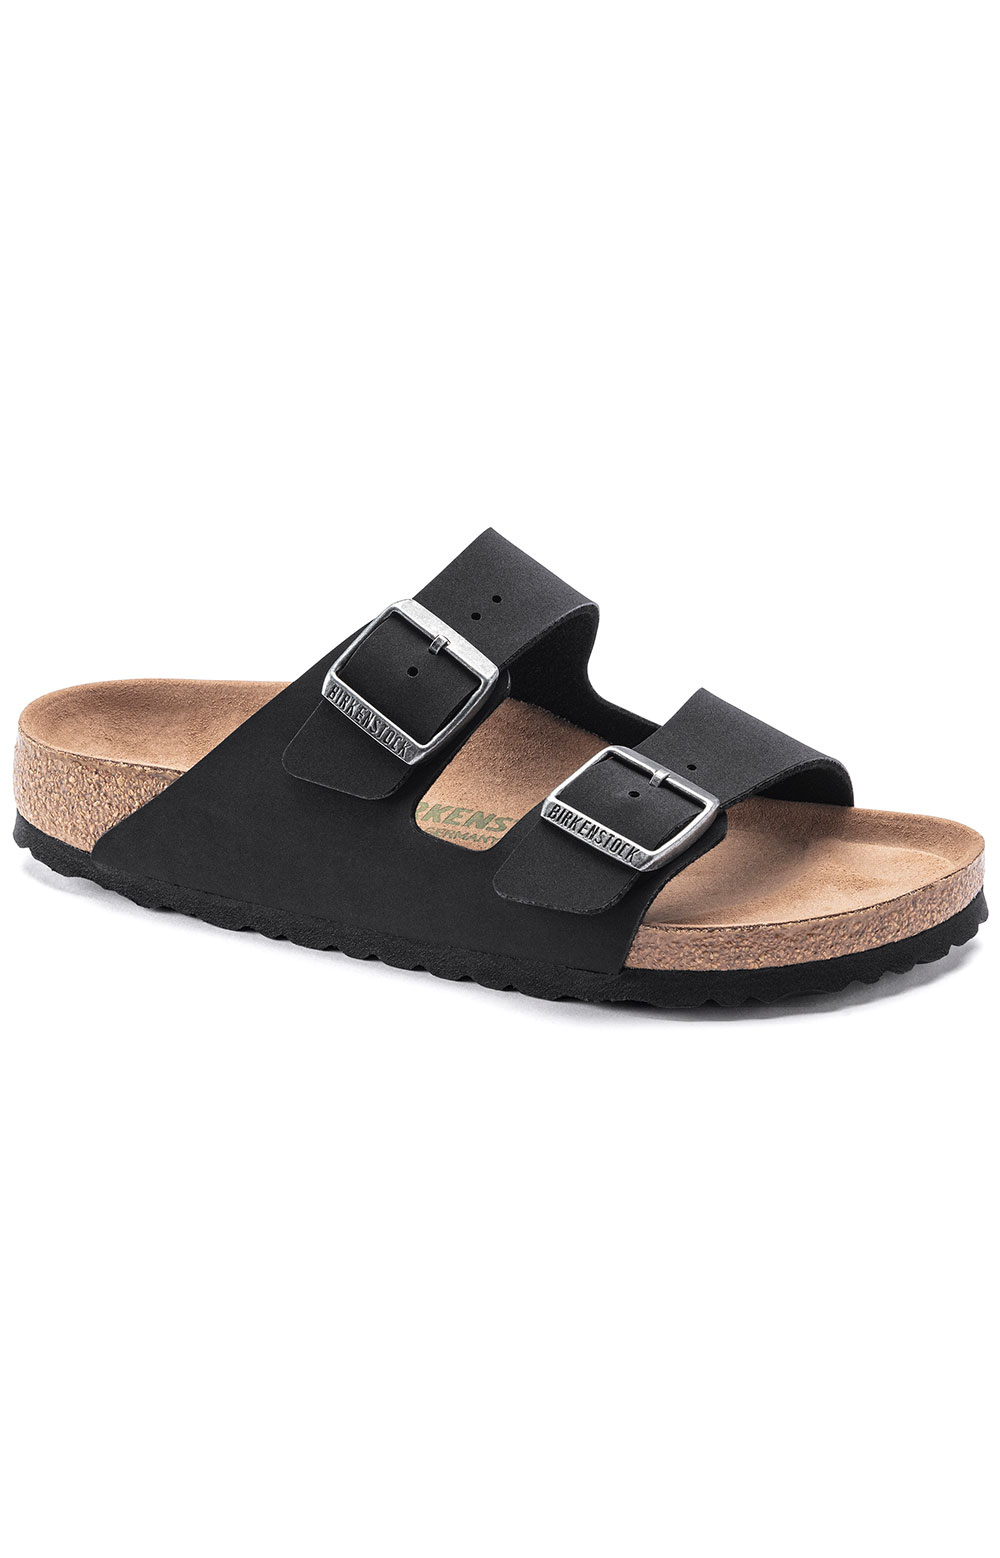 (1019115) Arizona Vegan Sandals - Black 2